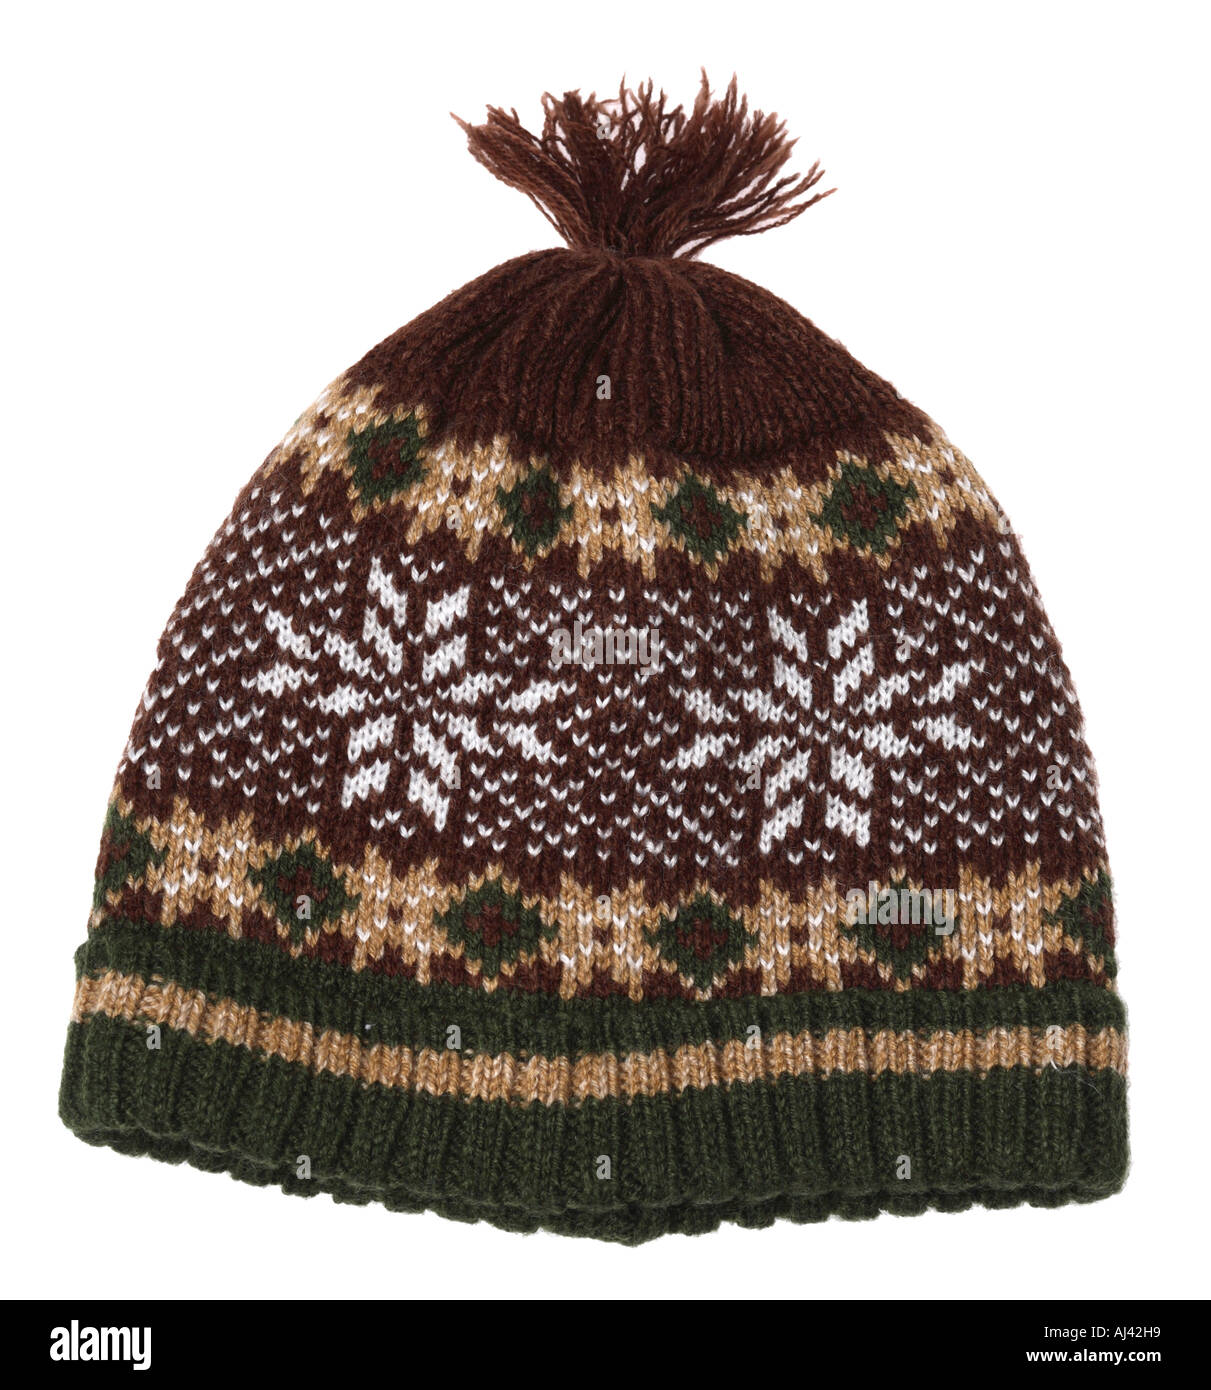 Knit Hat - Stock Image